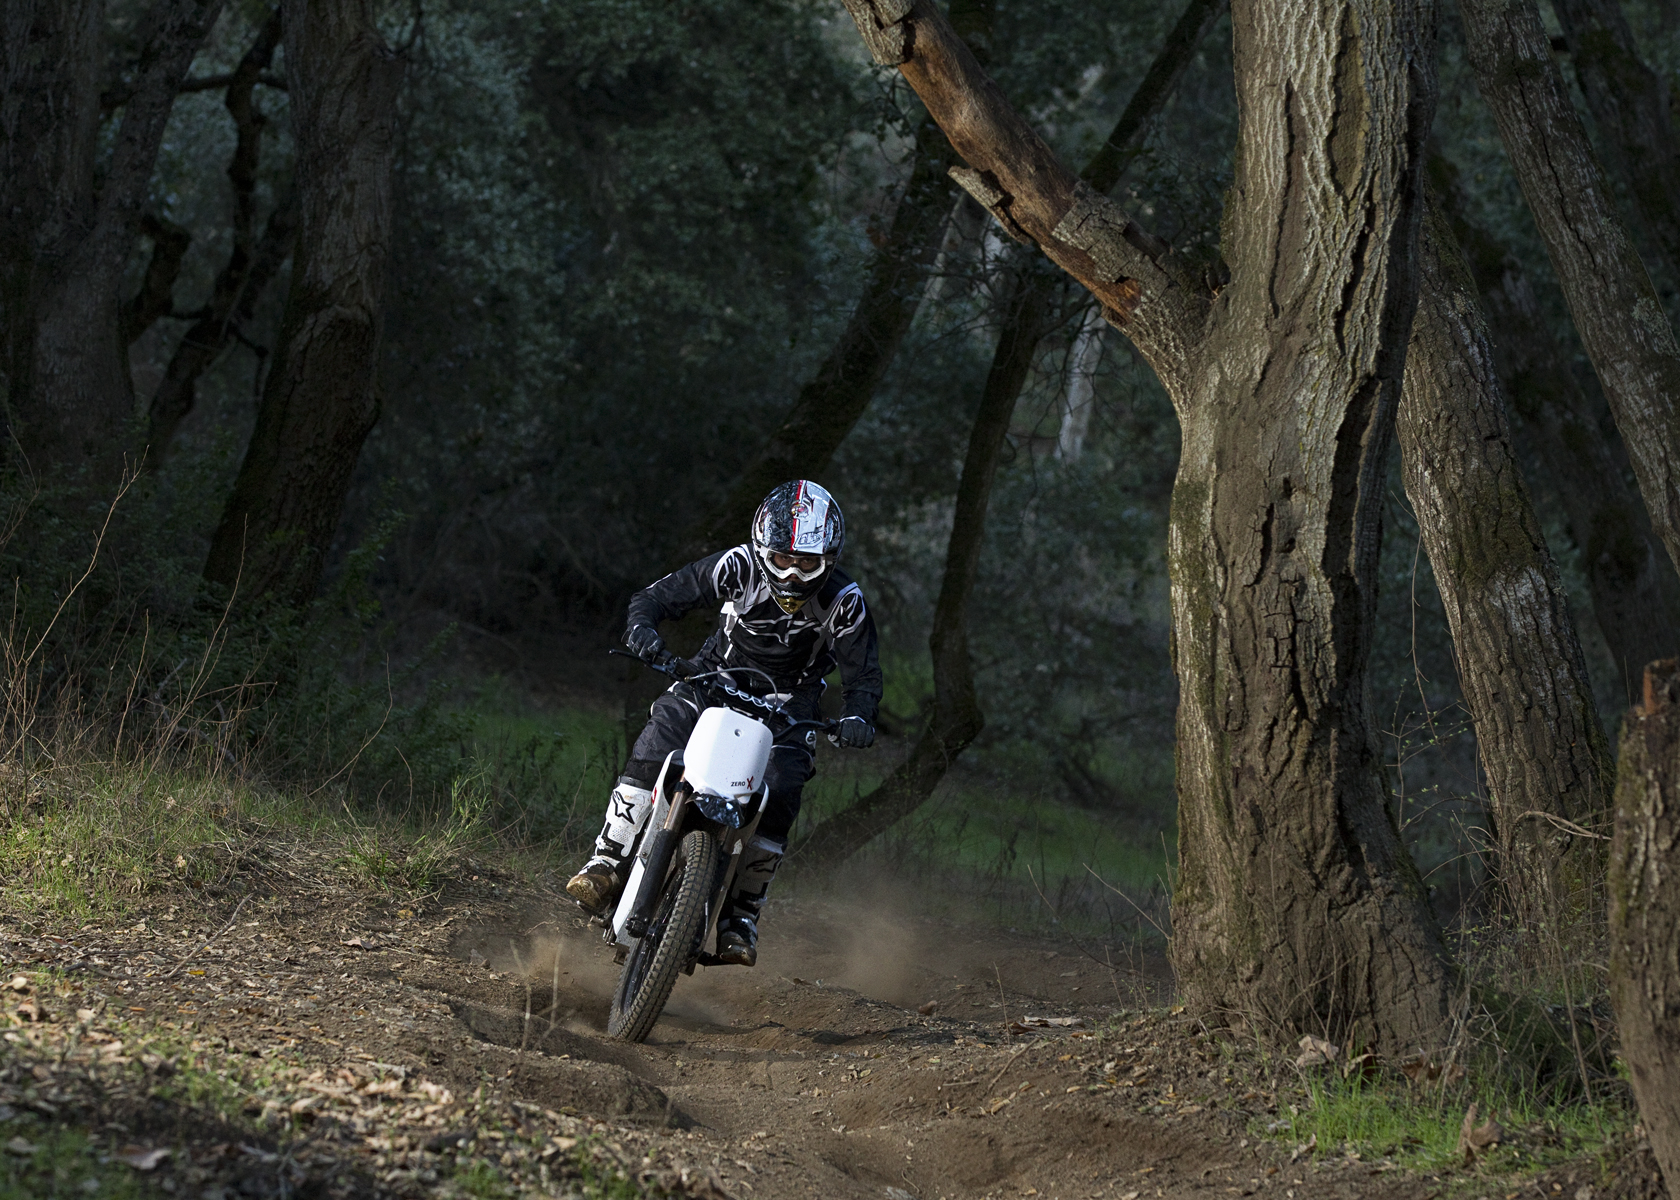 2011 Zero X Electric Motorcycle: Charging Up a Wooded Trail